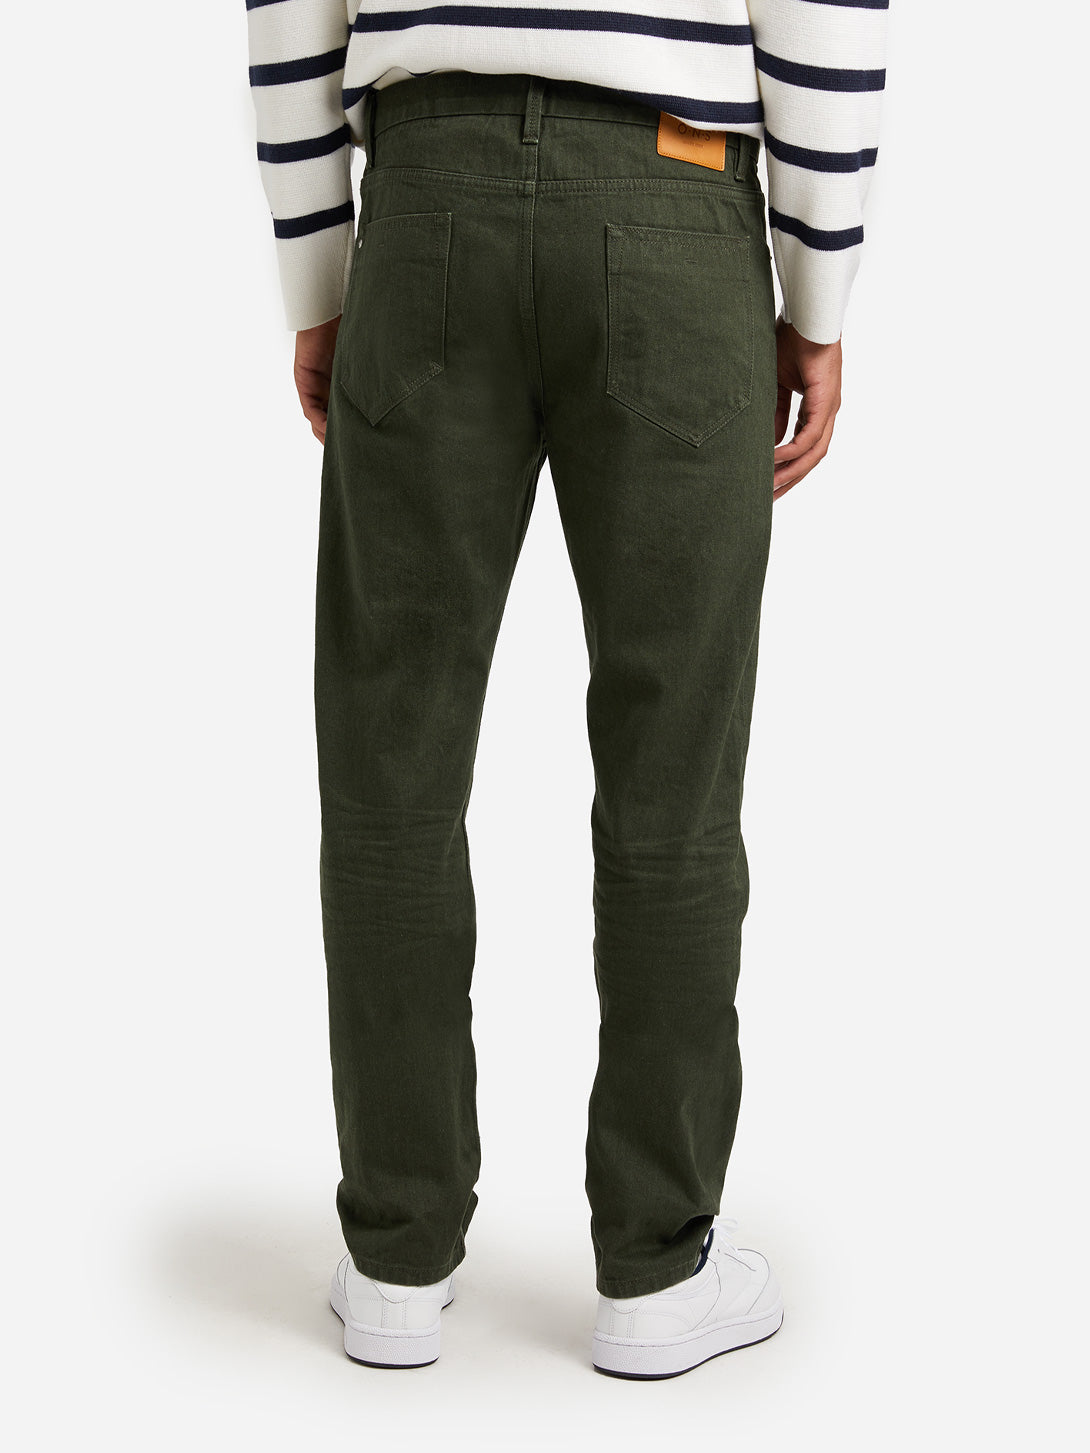 OLIVE GREEN jeans for men denim missions ons clothing